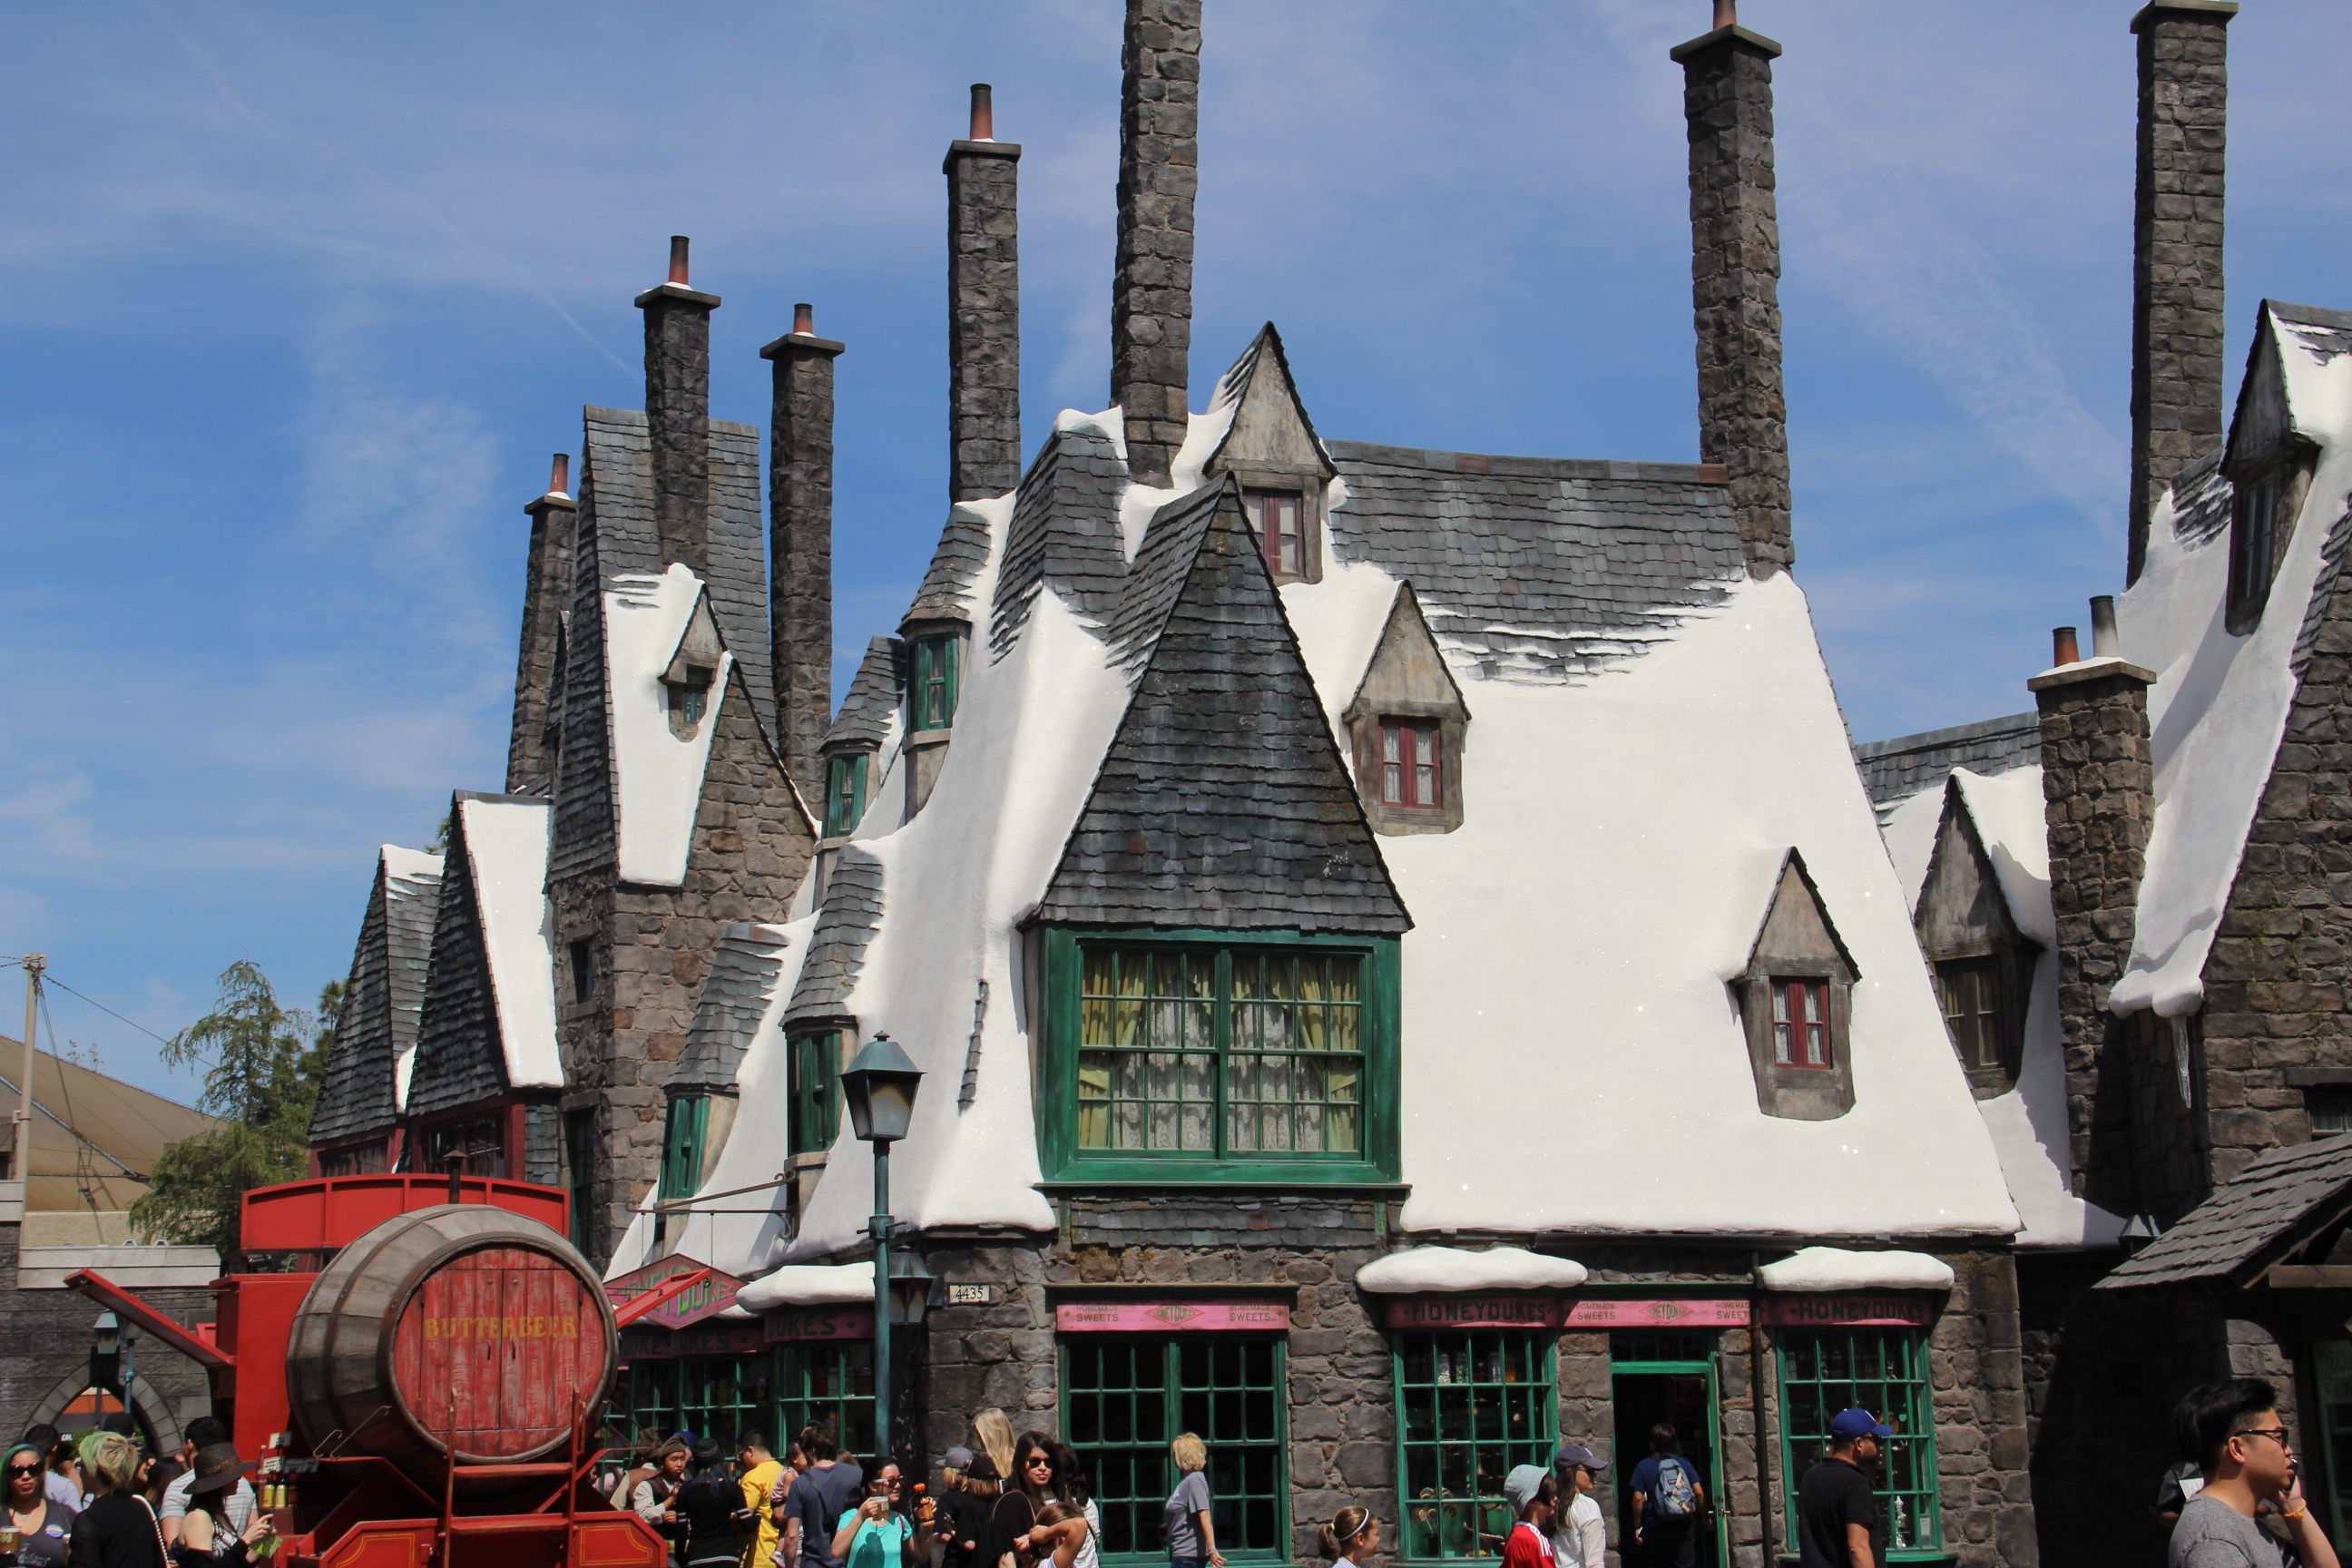 Wizarding World of Harry Potter - Universal Studios - LATF USA